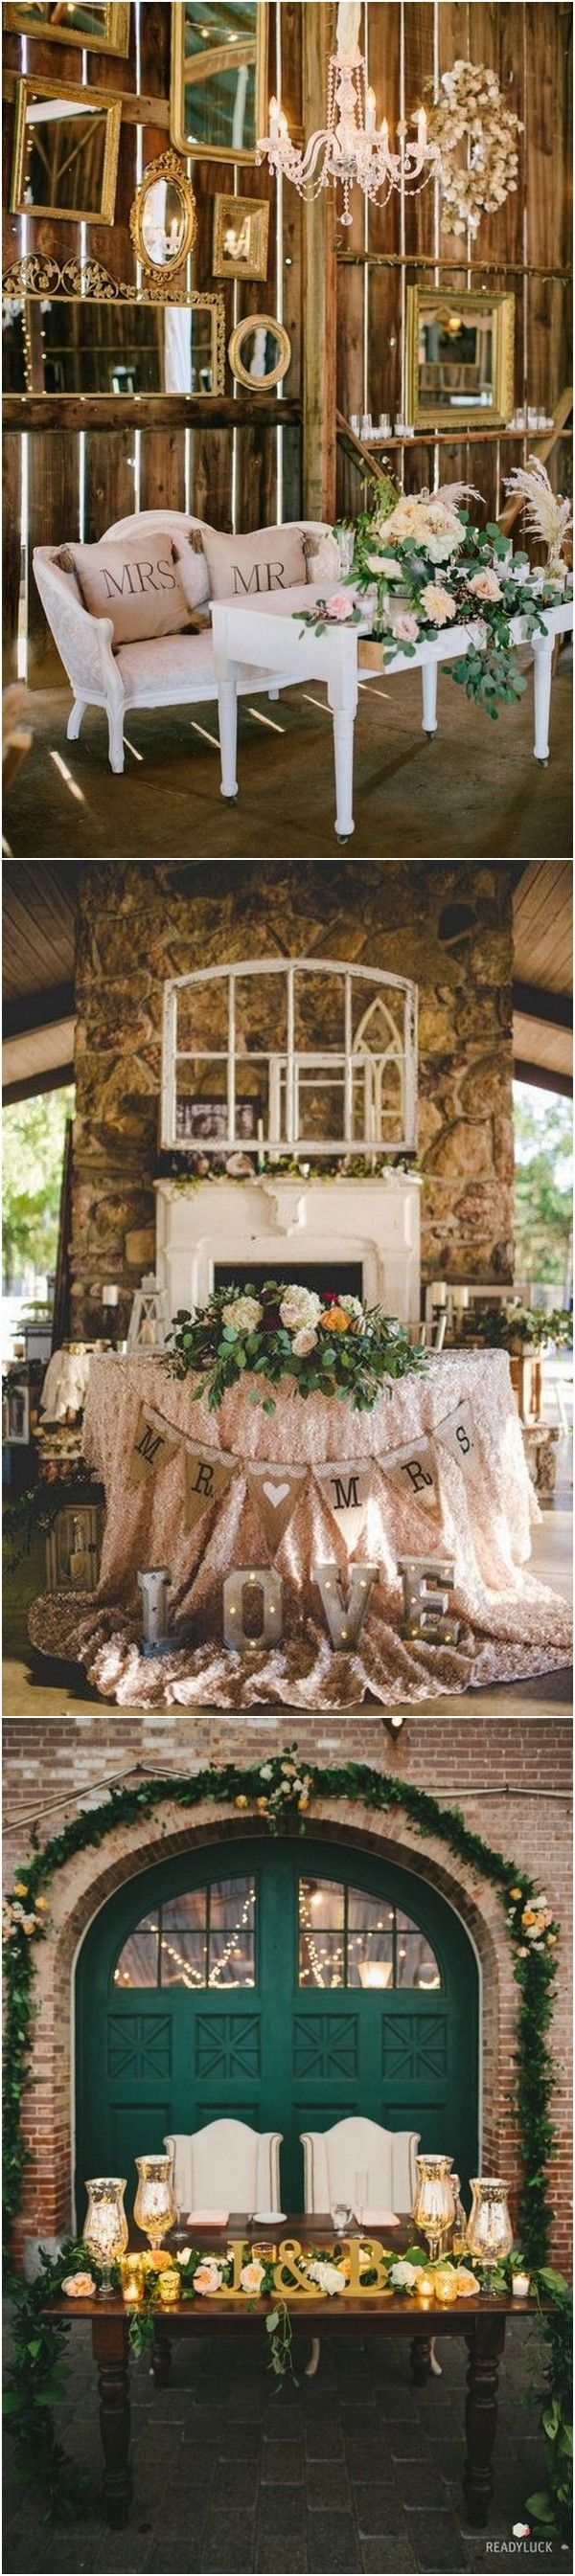 wedding reception at home ideas uk%0A    Vintage Wedding Sweetheart Table Decoration Ideas  Page   of